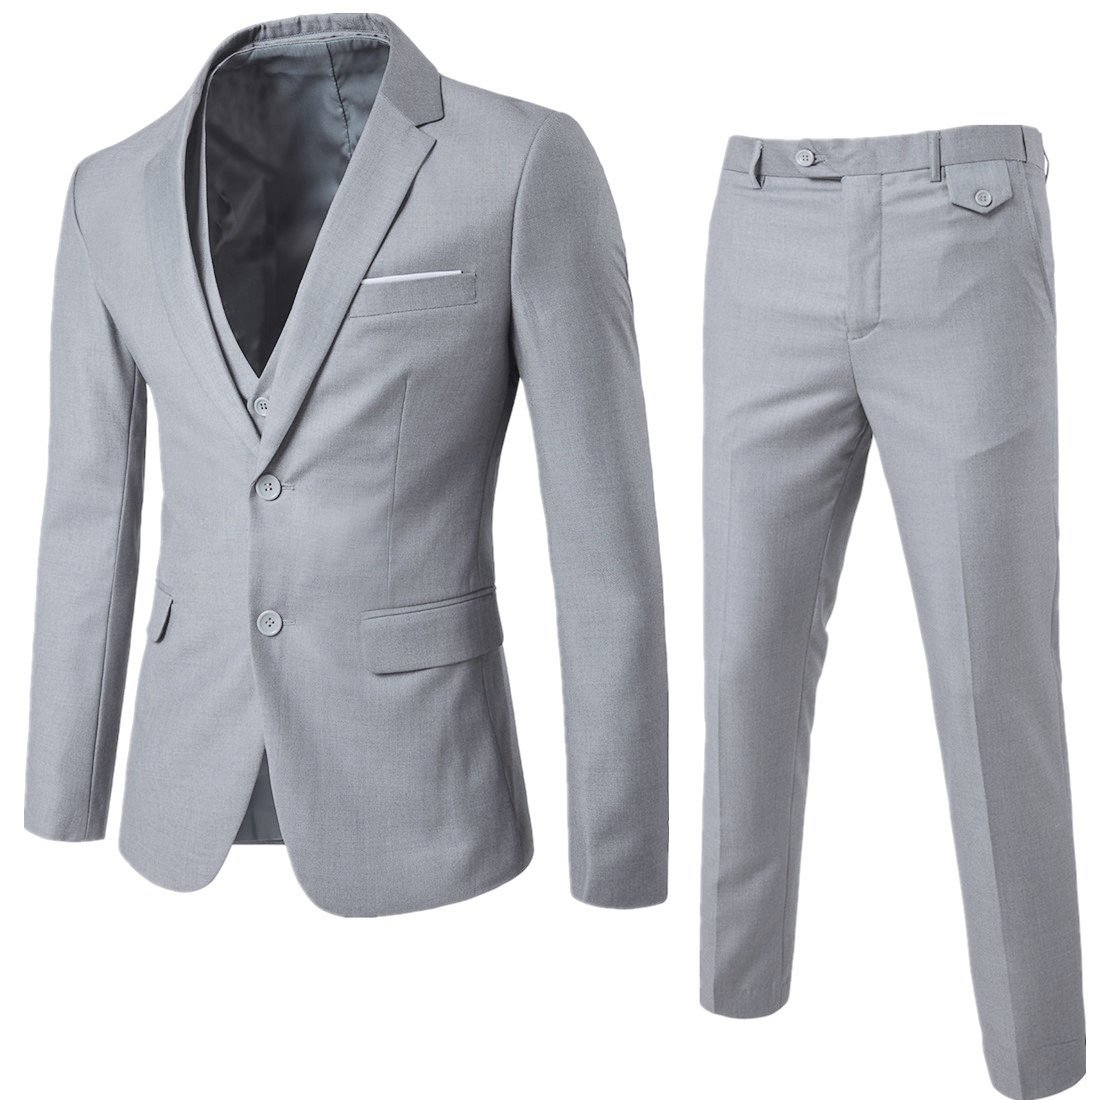 YIMANIE Men's Suit 3 Piece Single Breasted Jacket Two Button Slim Fit Blazer Tux Vest&Trousers